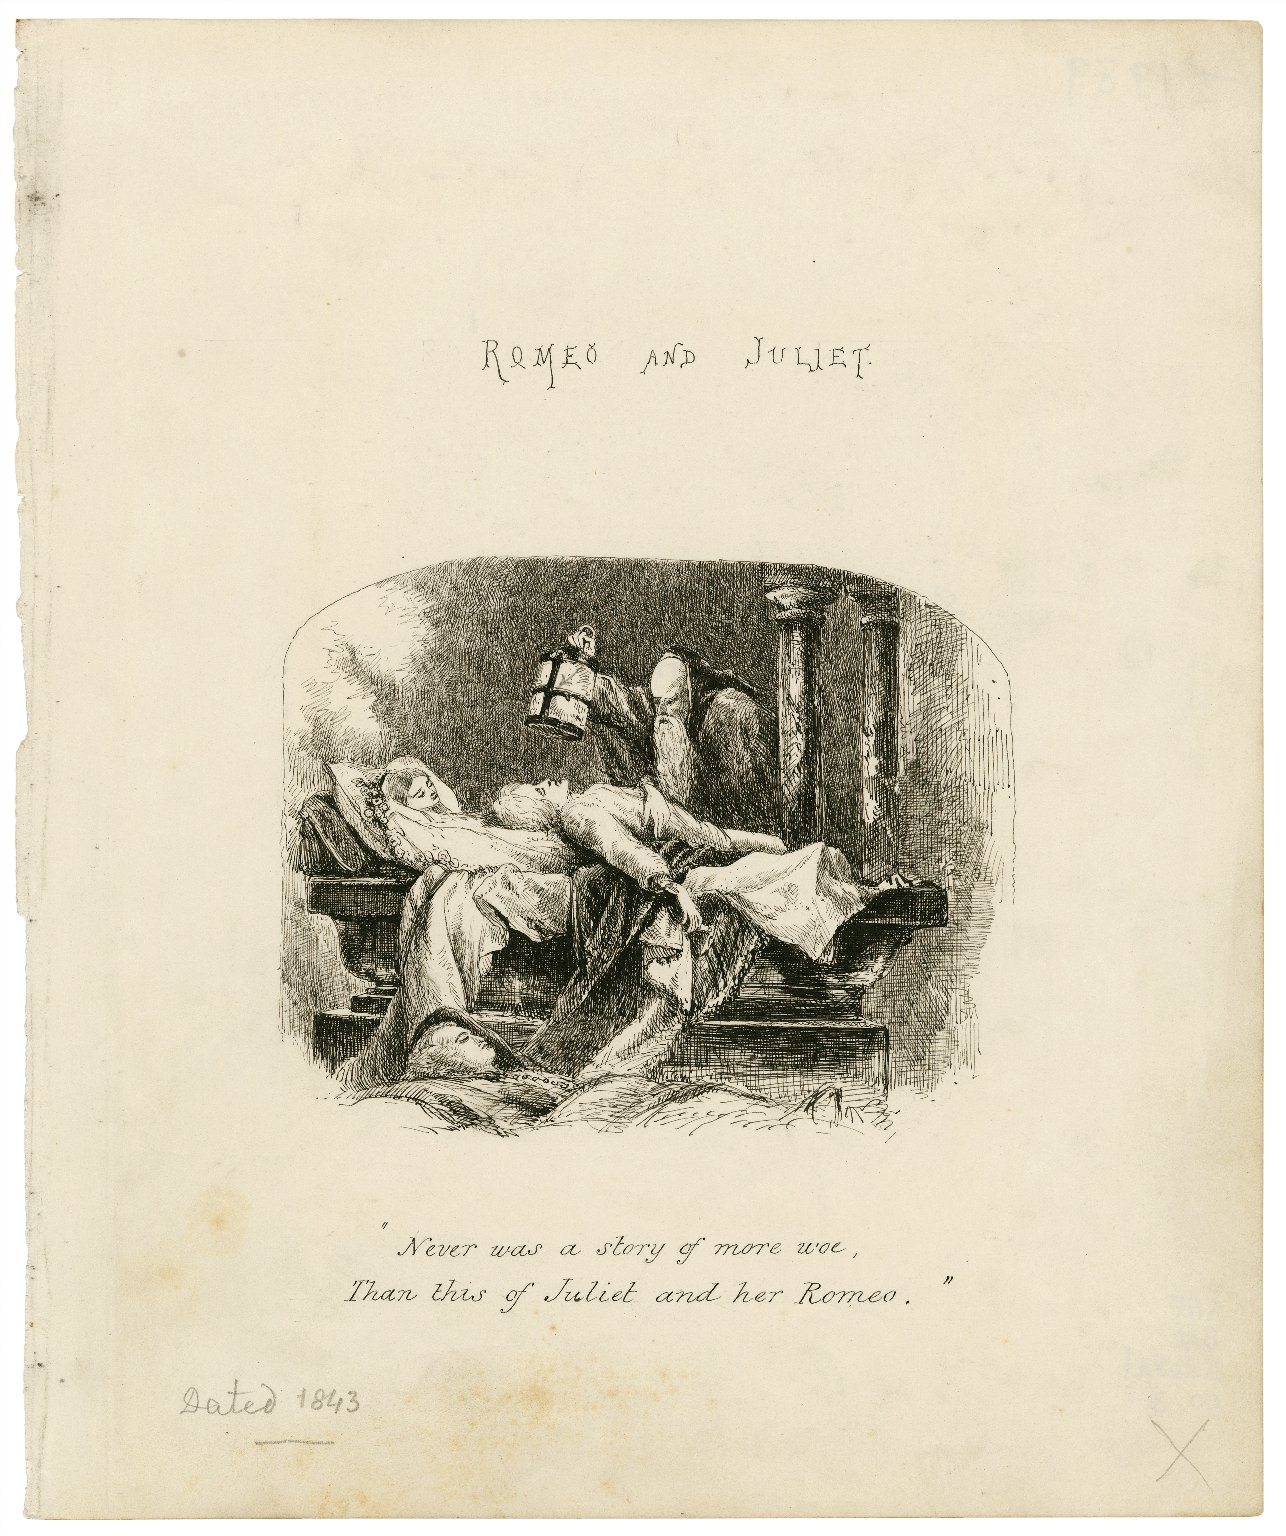 """Romeo and Juliet, [act V, scene 3]: """"Never was a story of more woe, than this of Juliet and her Romeo"""" [graphic]."""